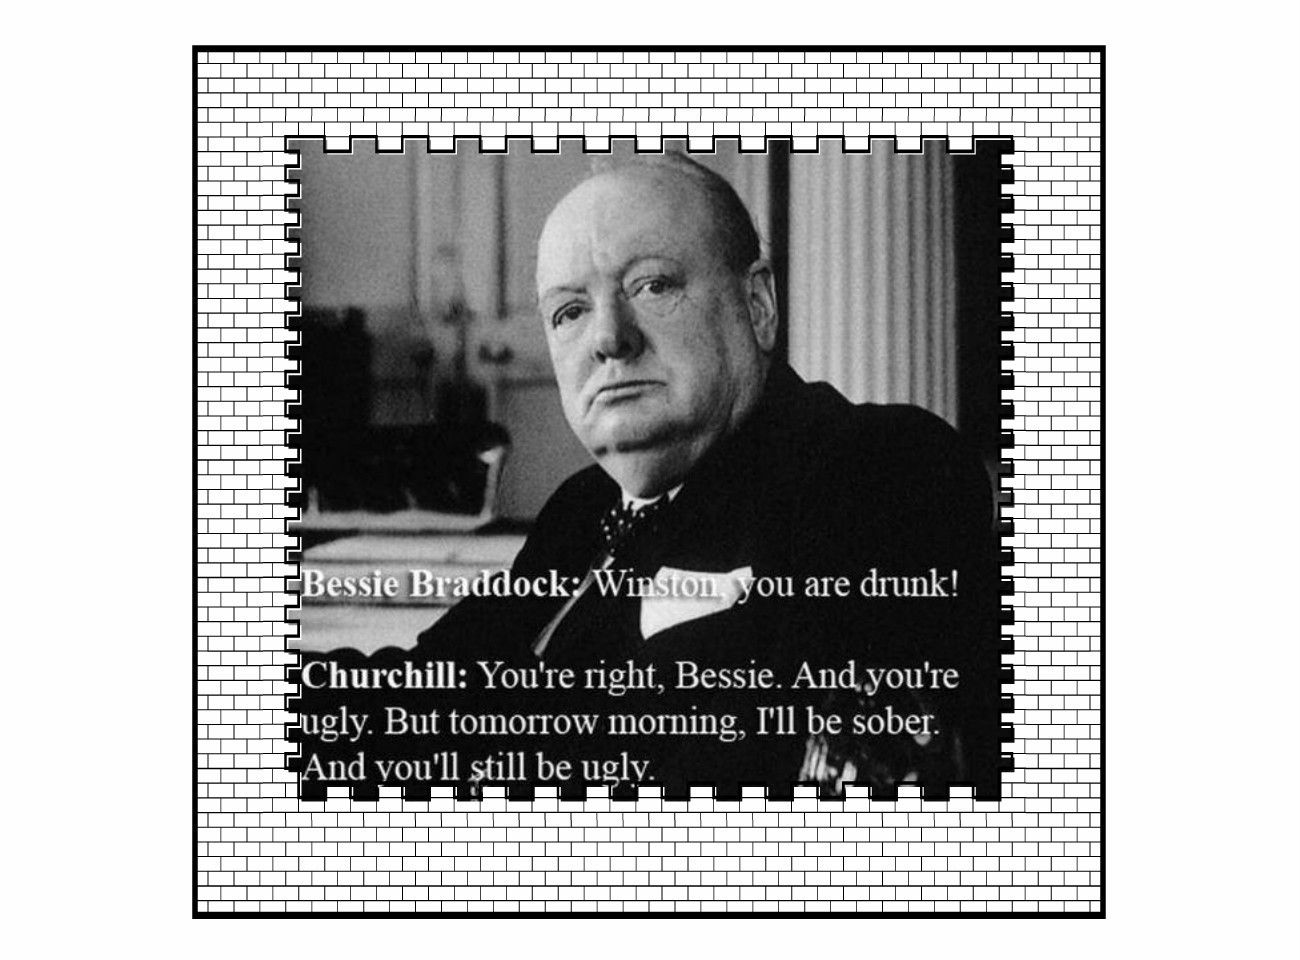 Winston Churchill Love Quotes Lex Luthor Quotes Winston Churchill  Google Search  T I M E